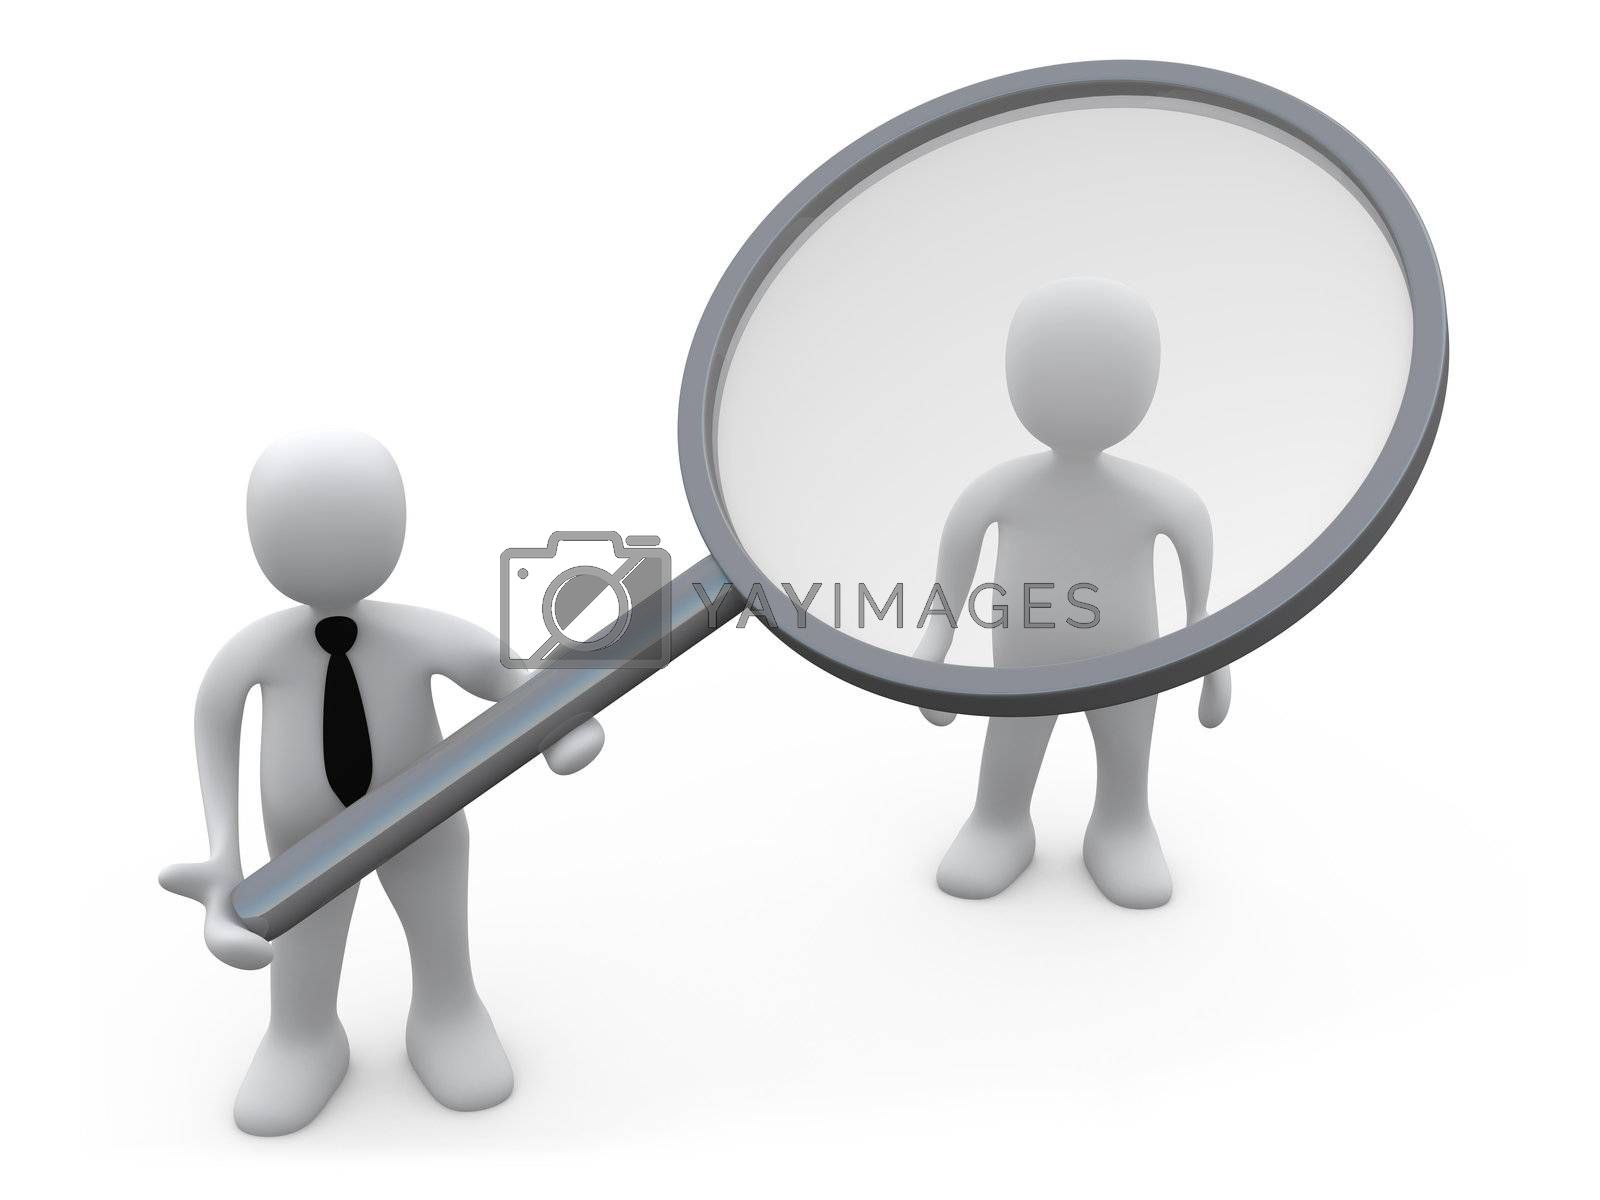 Business Person Holding A Magnifying Lens Over A Customer.